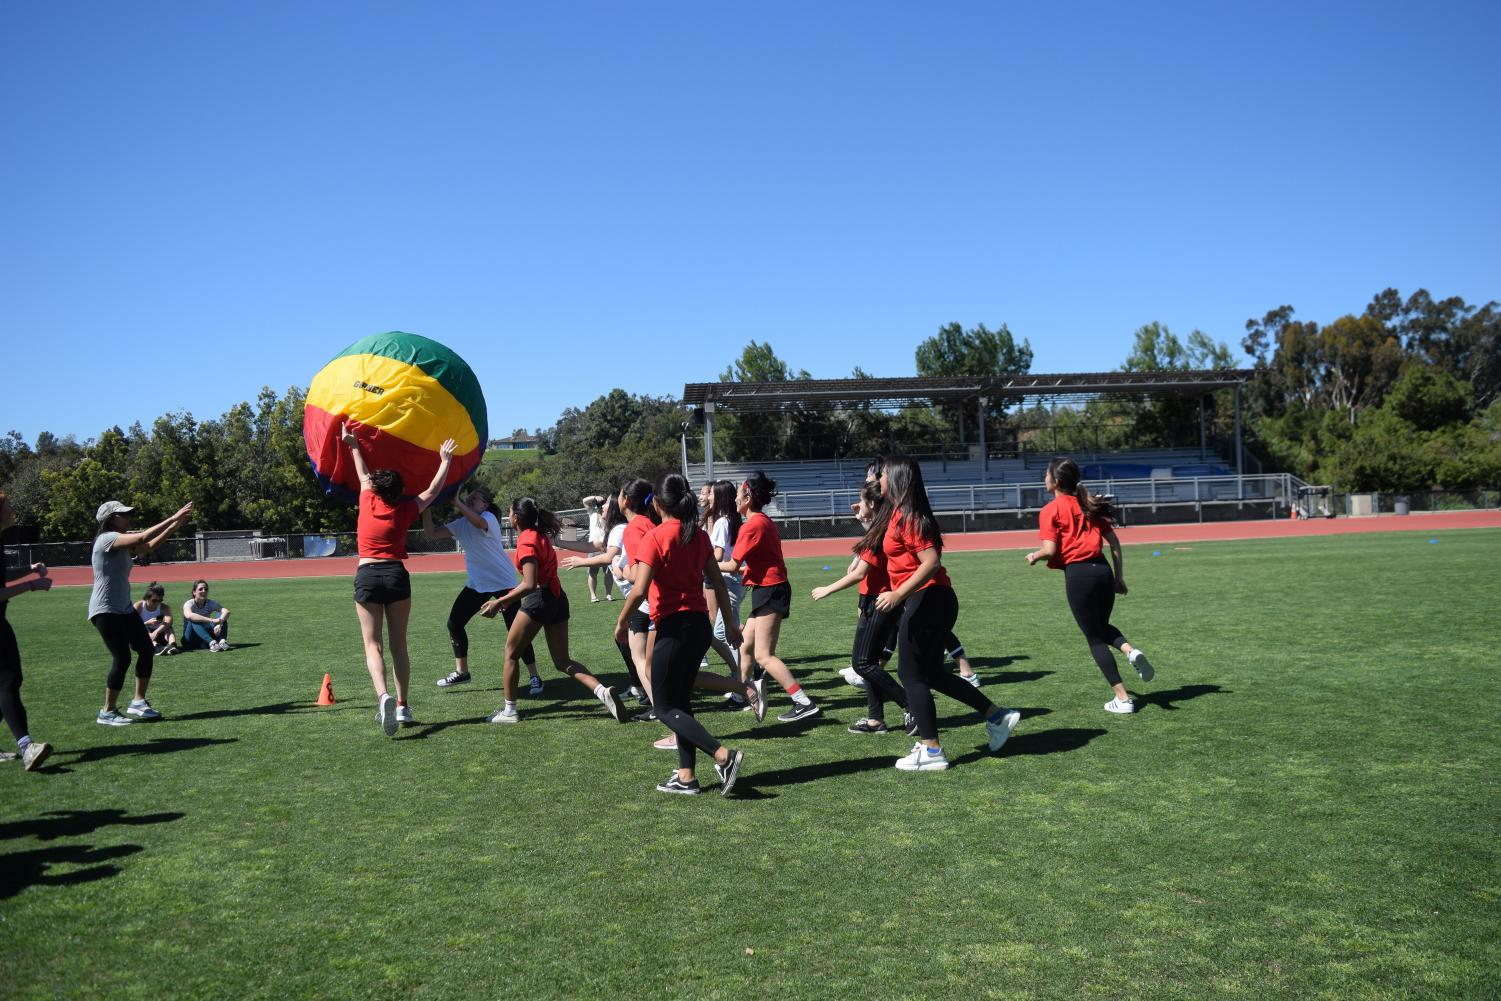 VWS class of 2020 competes against VWS class of 2022 in earth ball.